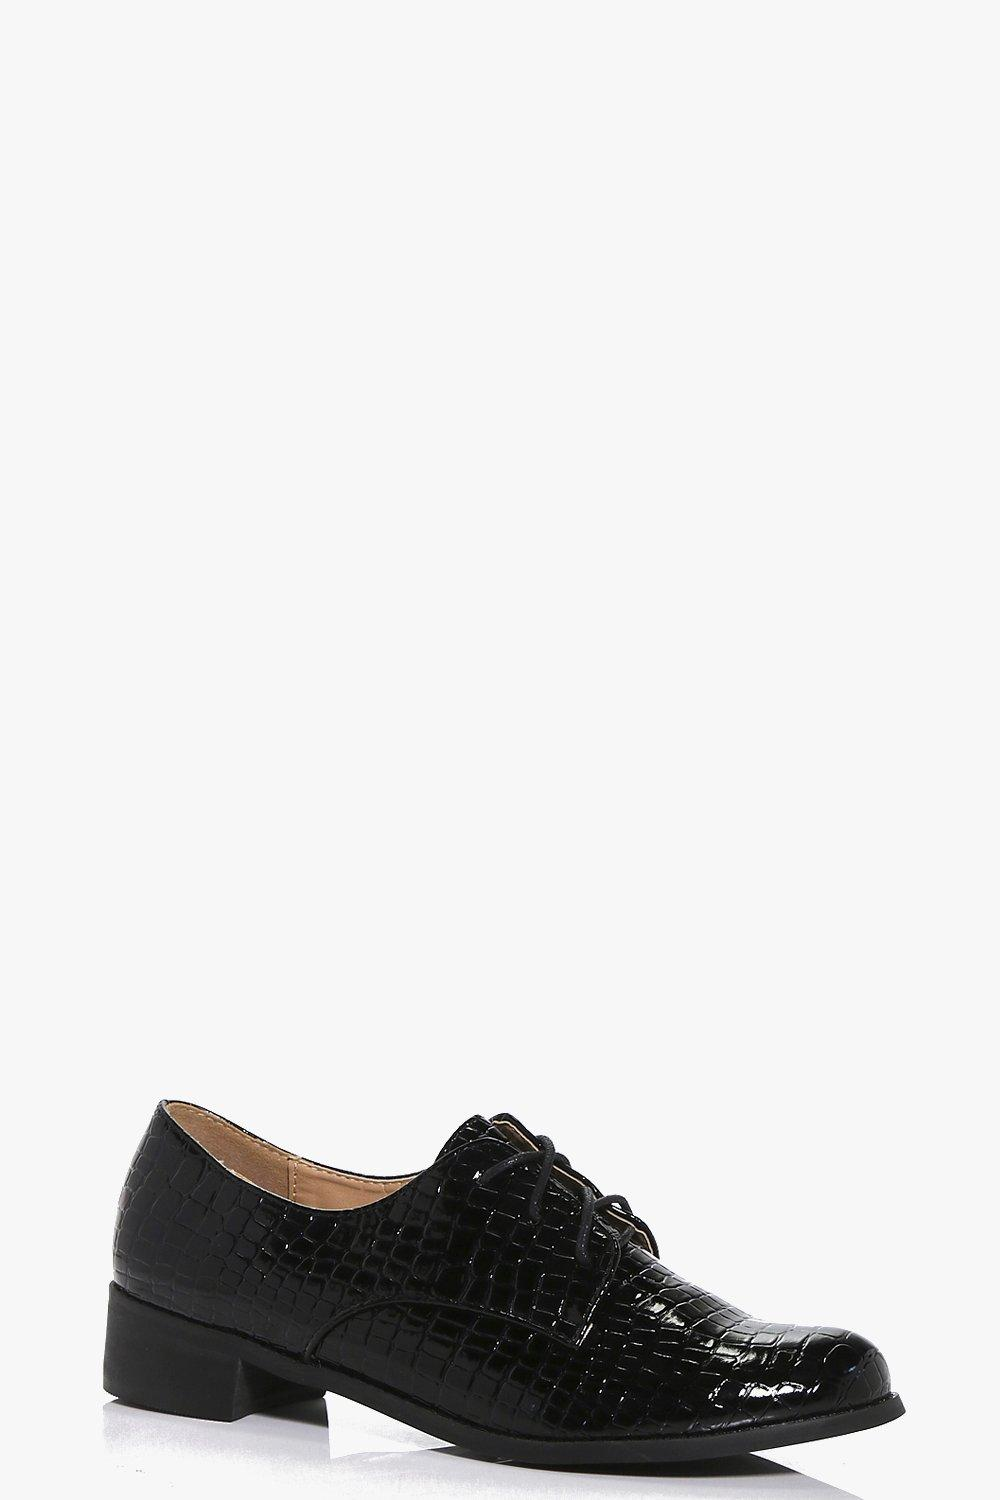 Maisy Croc Effect Lace Up Brogue